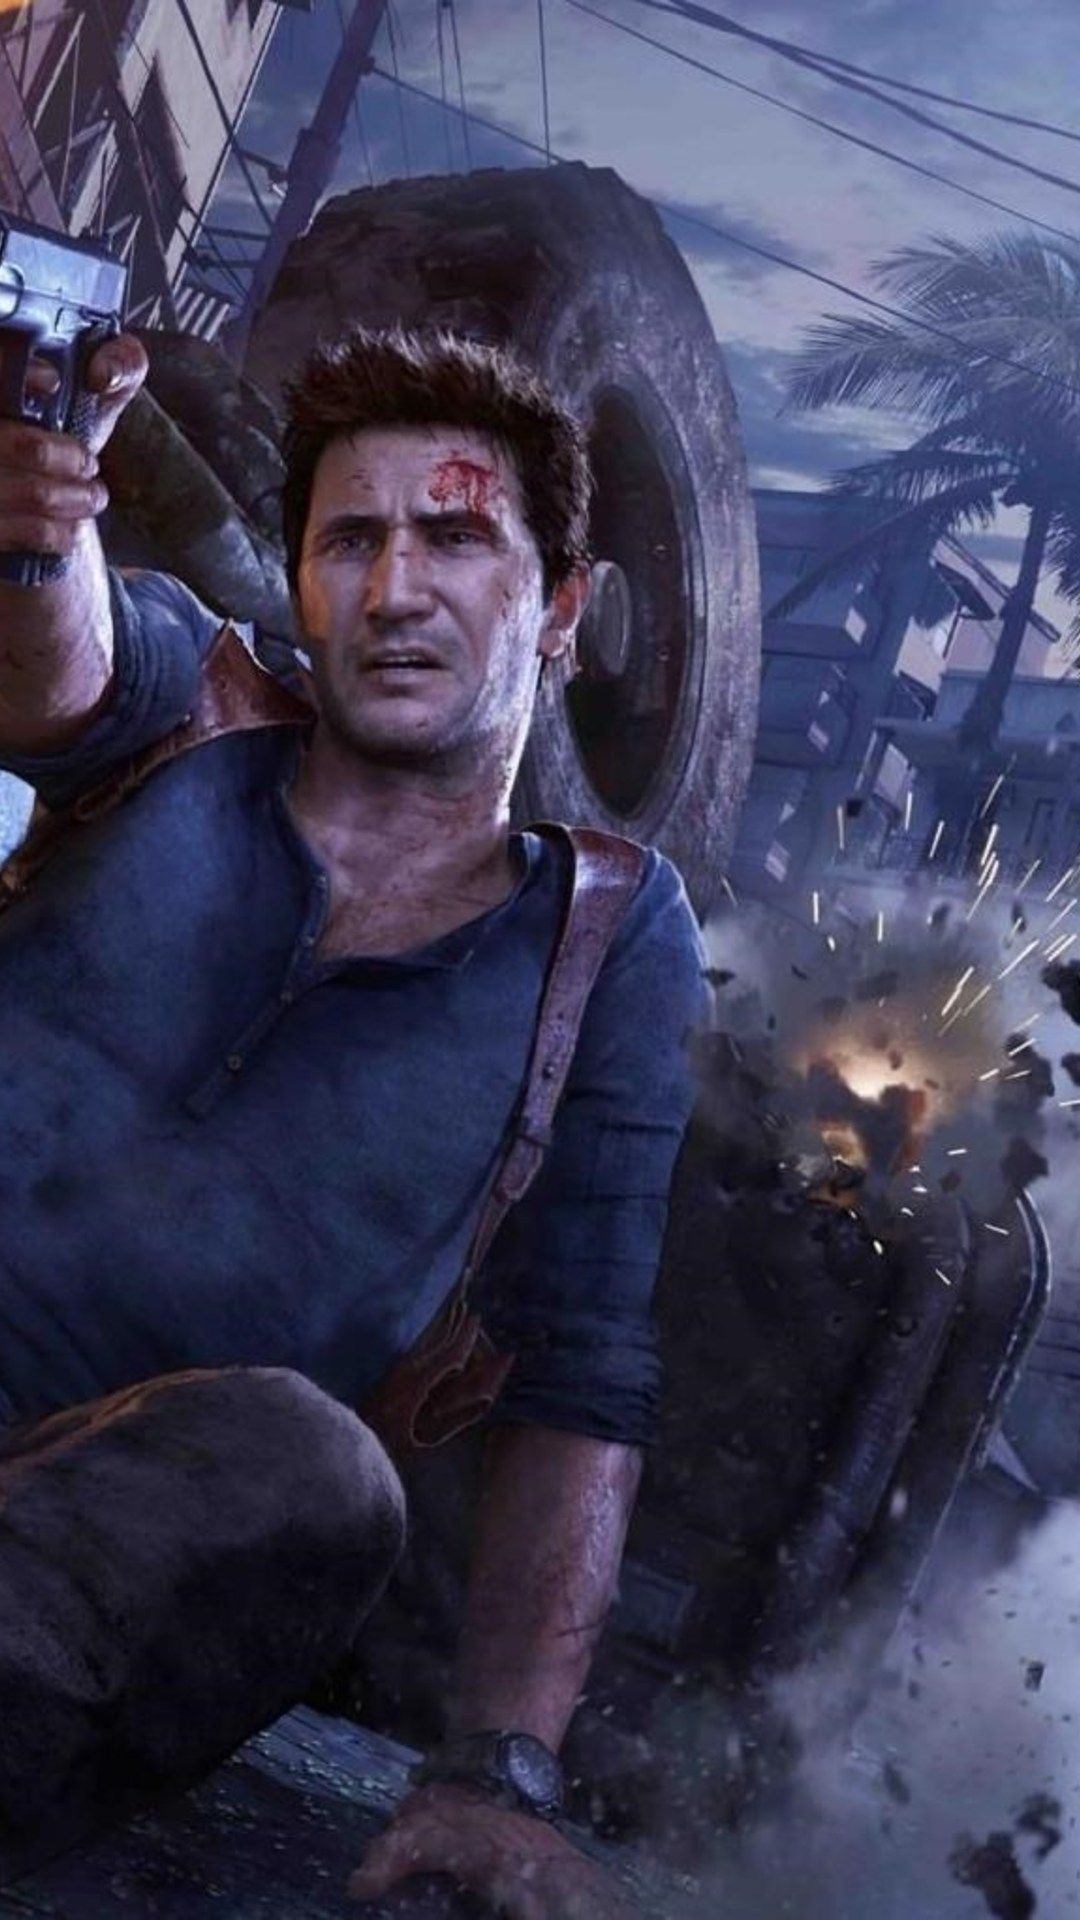 Uncharted 4 Iphone Wallpaper Hupages Download Iphone Wallpapers Uncharted Wallpaper Iphone Wallpaper